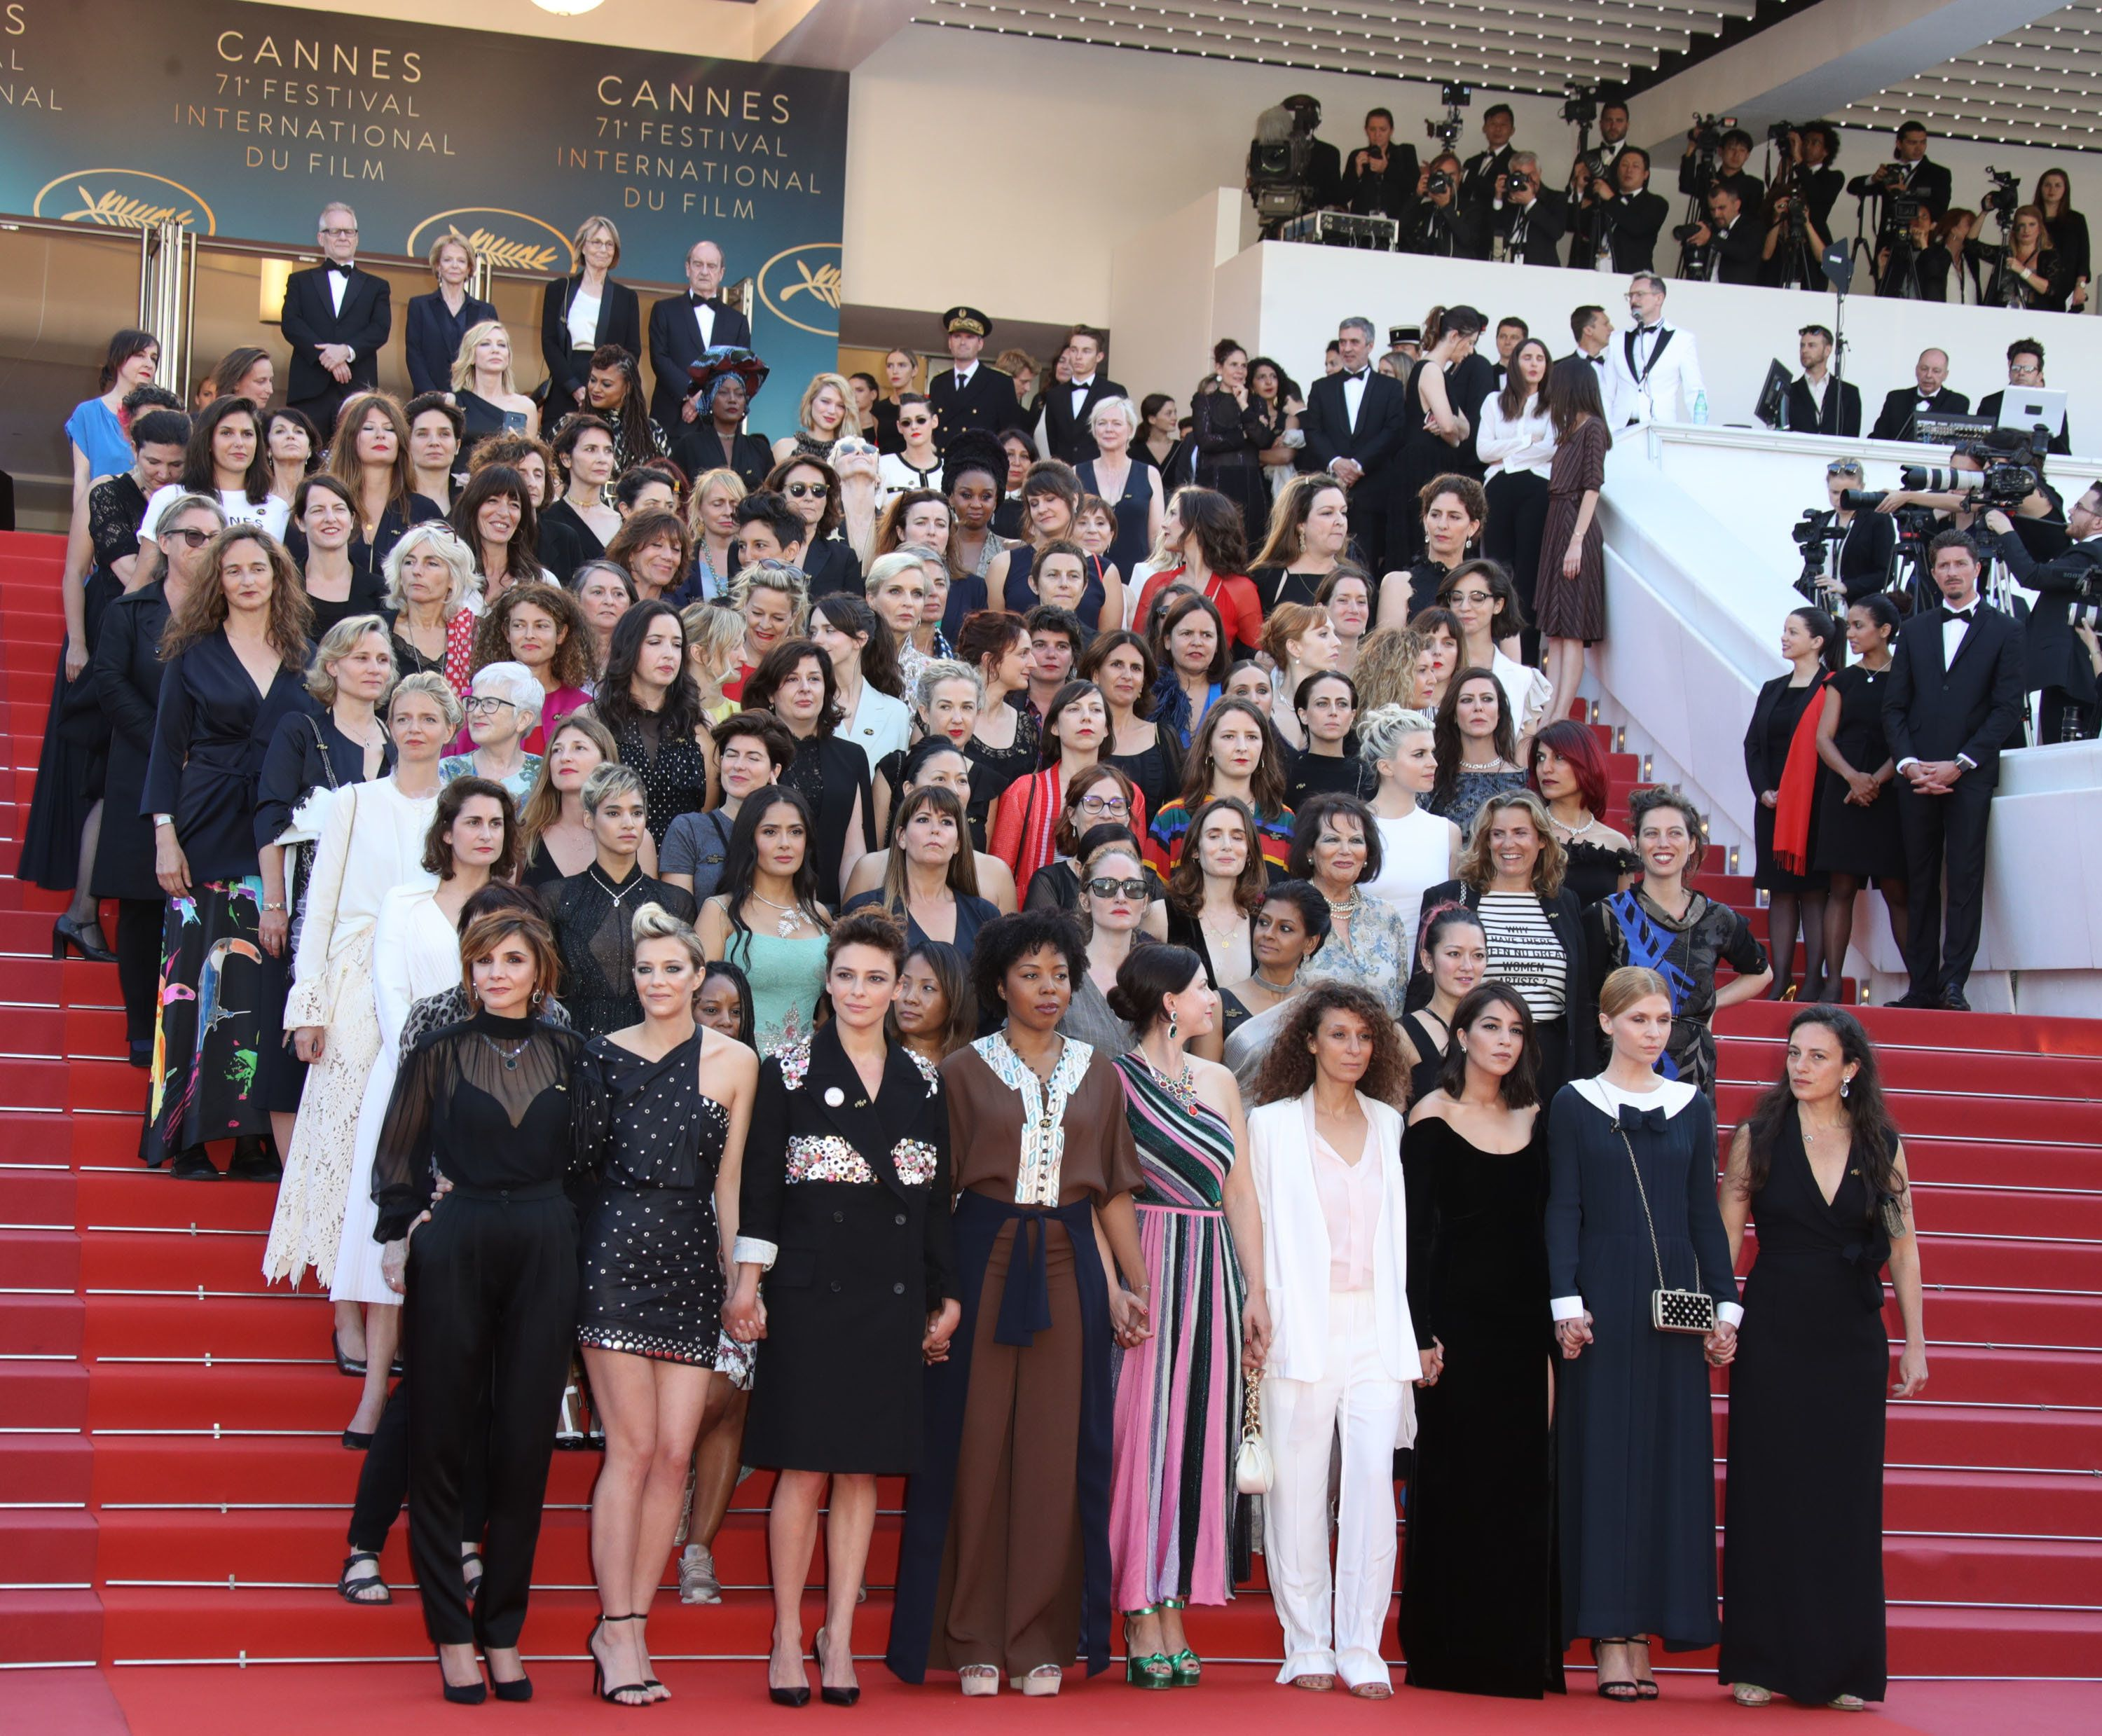 82 Women Take To Cannes Red Carpet To Protest Inequality In